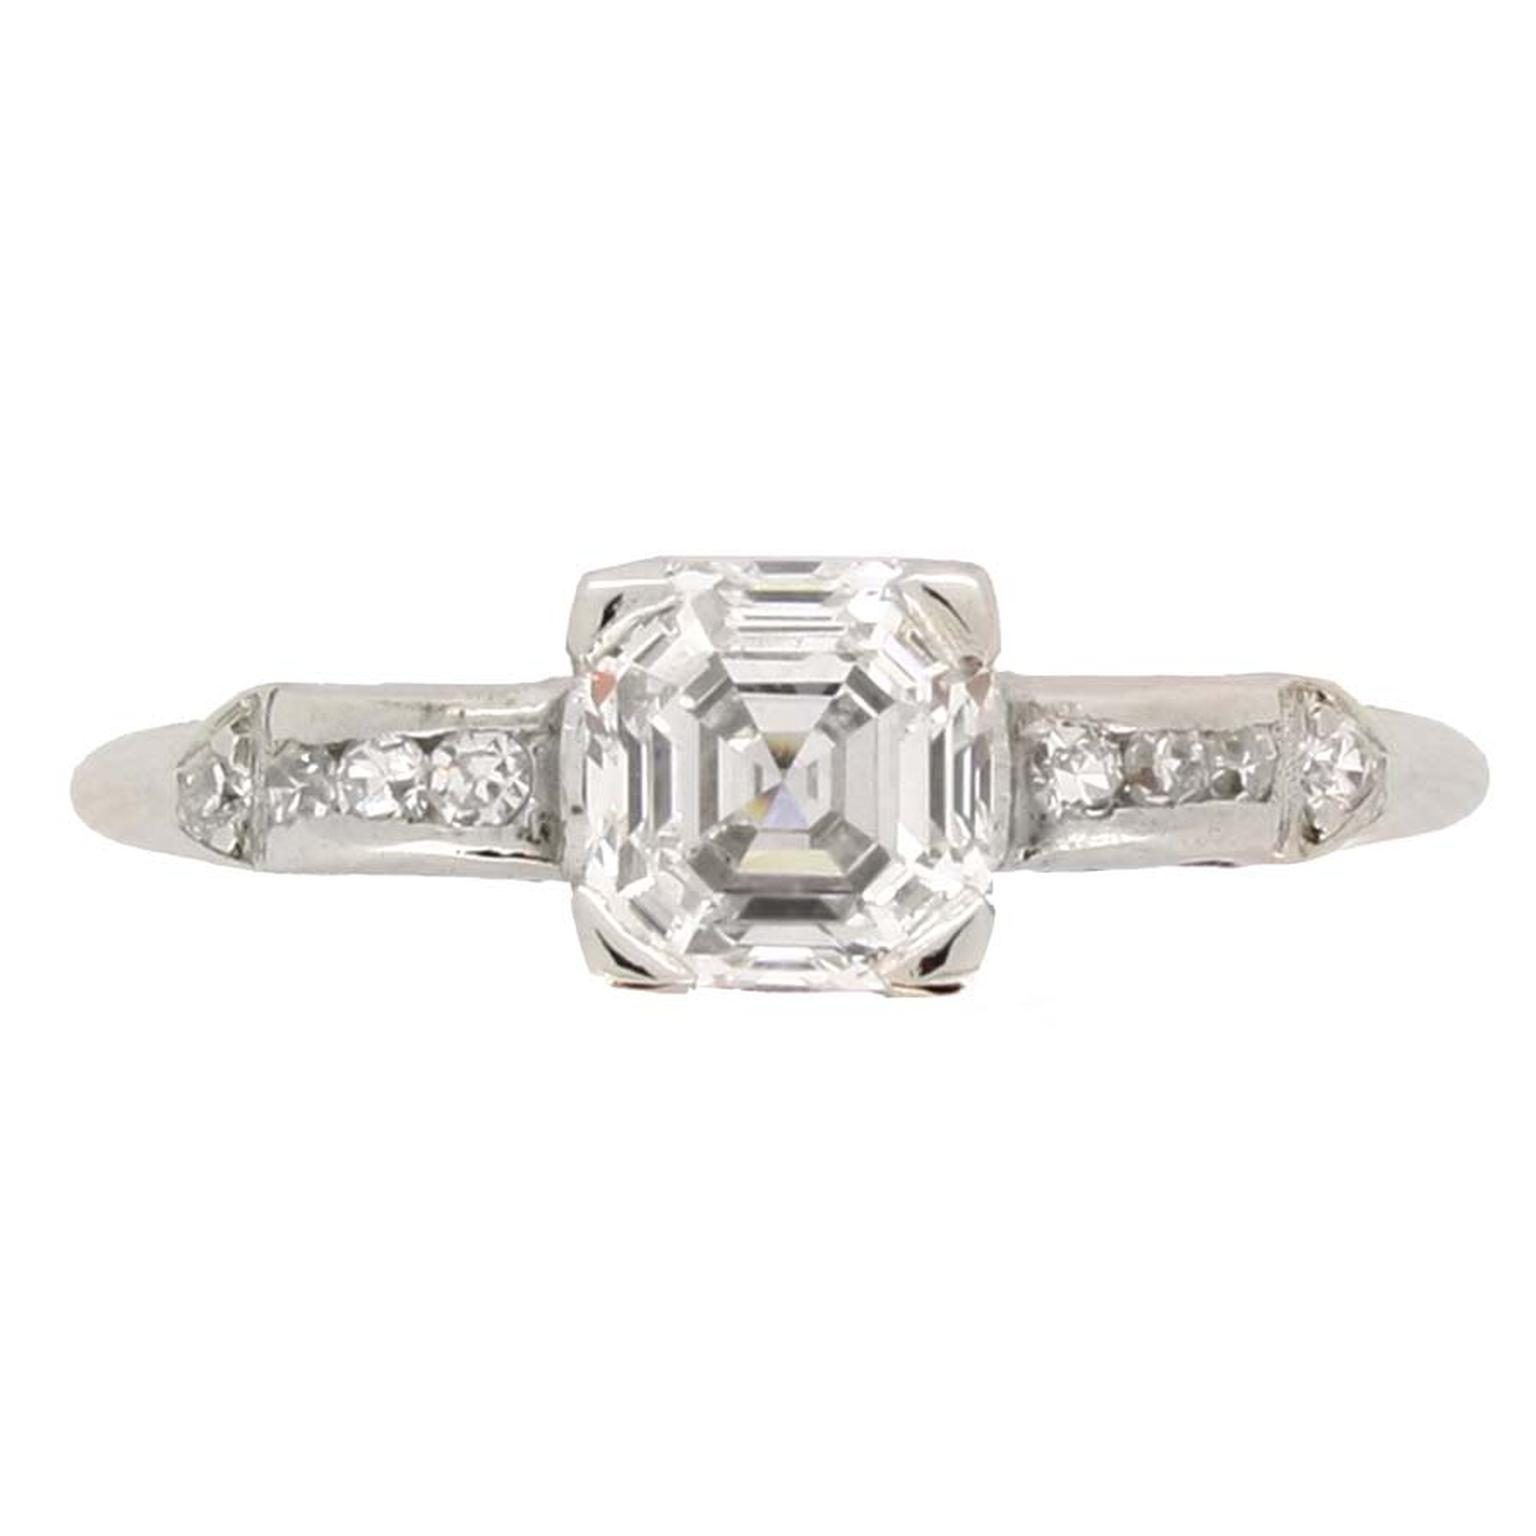 Berganza Asscher cut diamod engagement ring